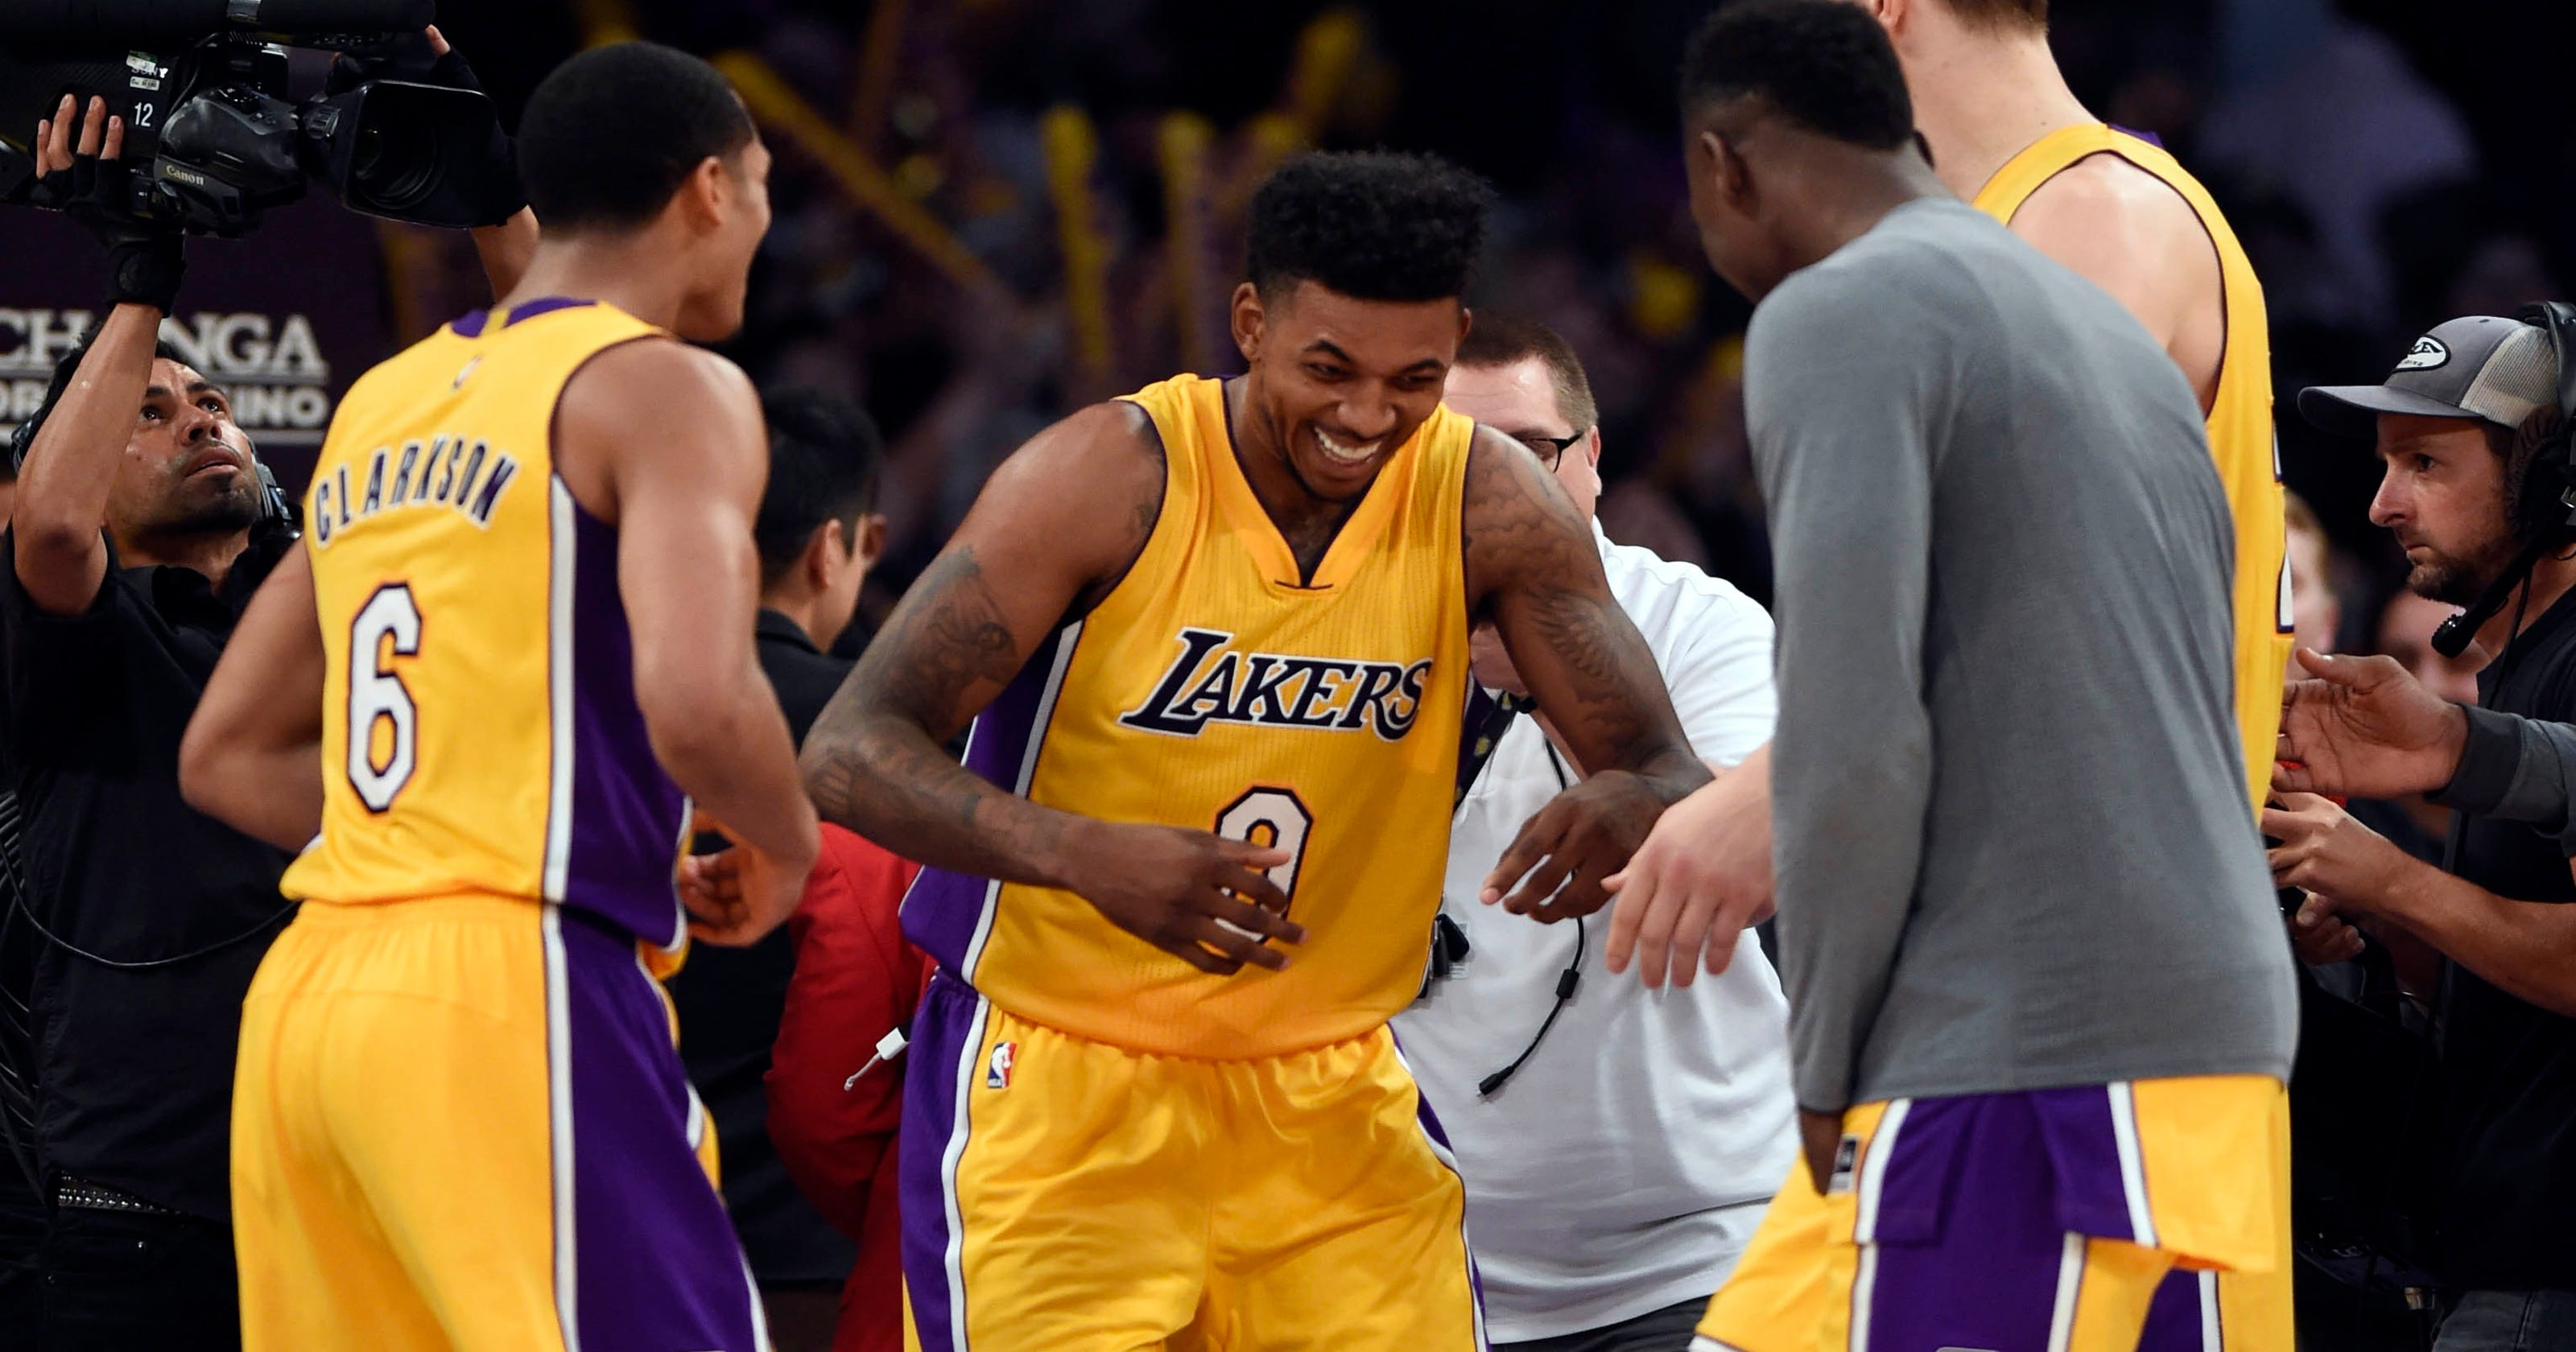 db3b94d703d8 Nick Young s late 3 lifts Lakers over Thunder